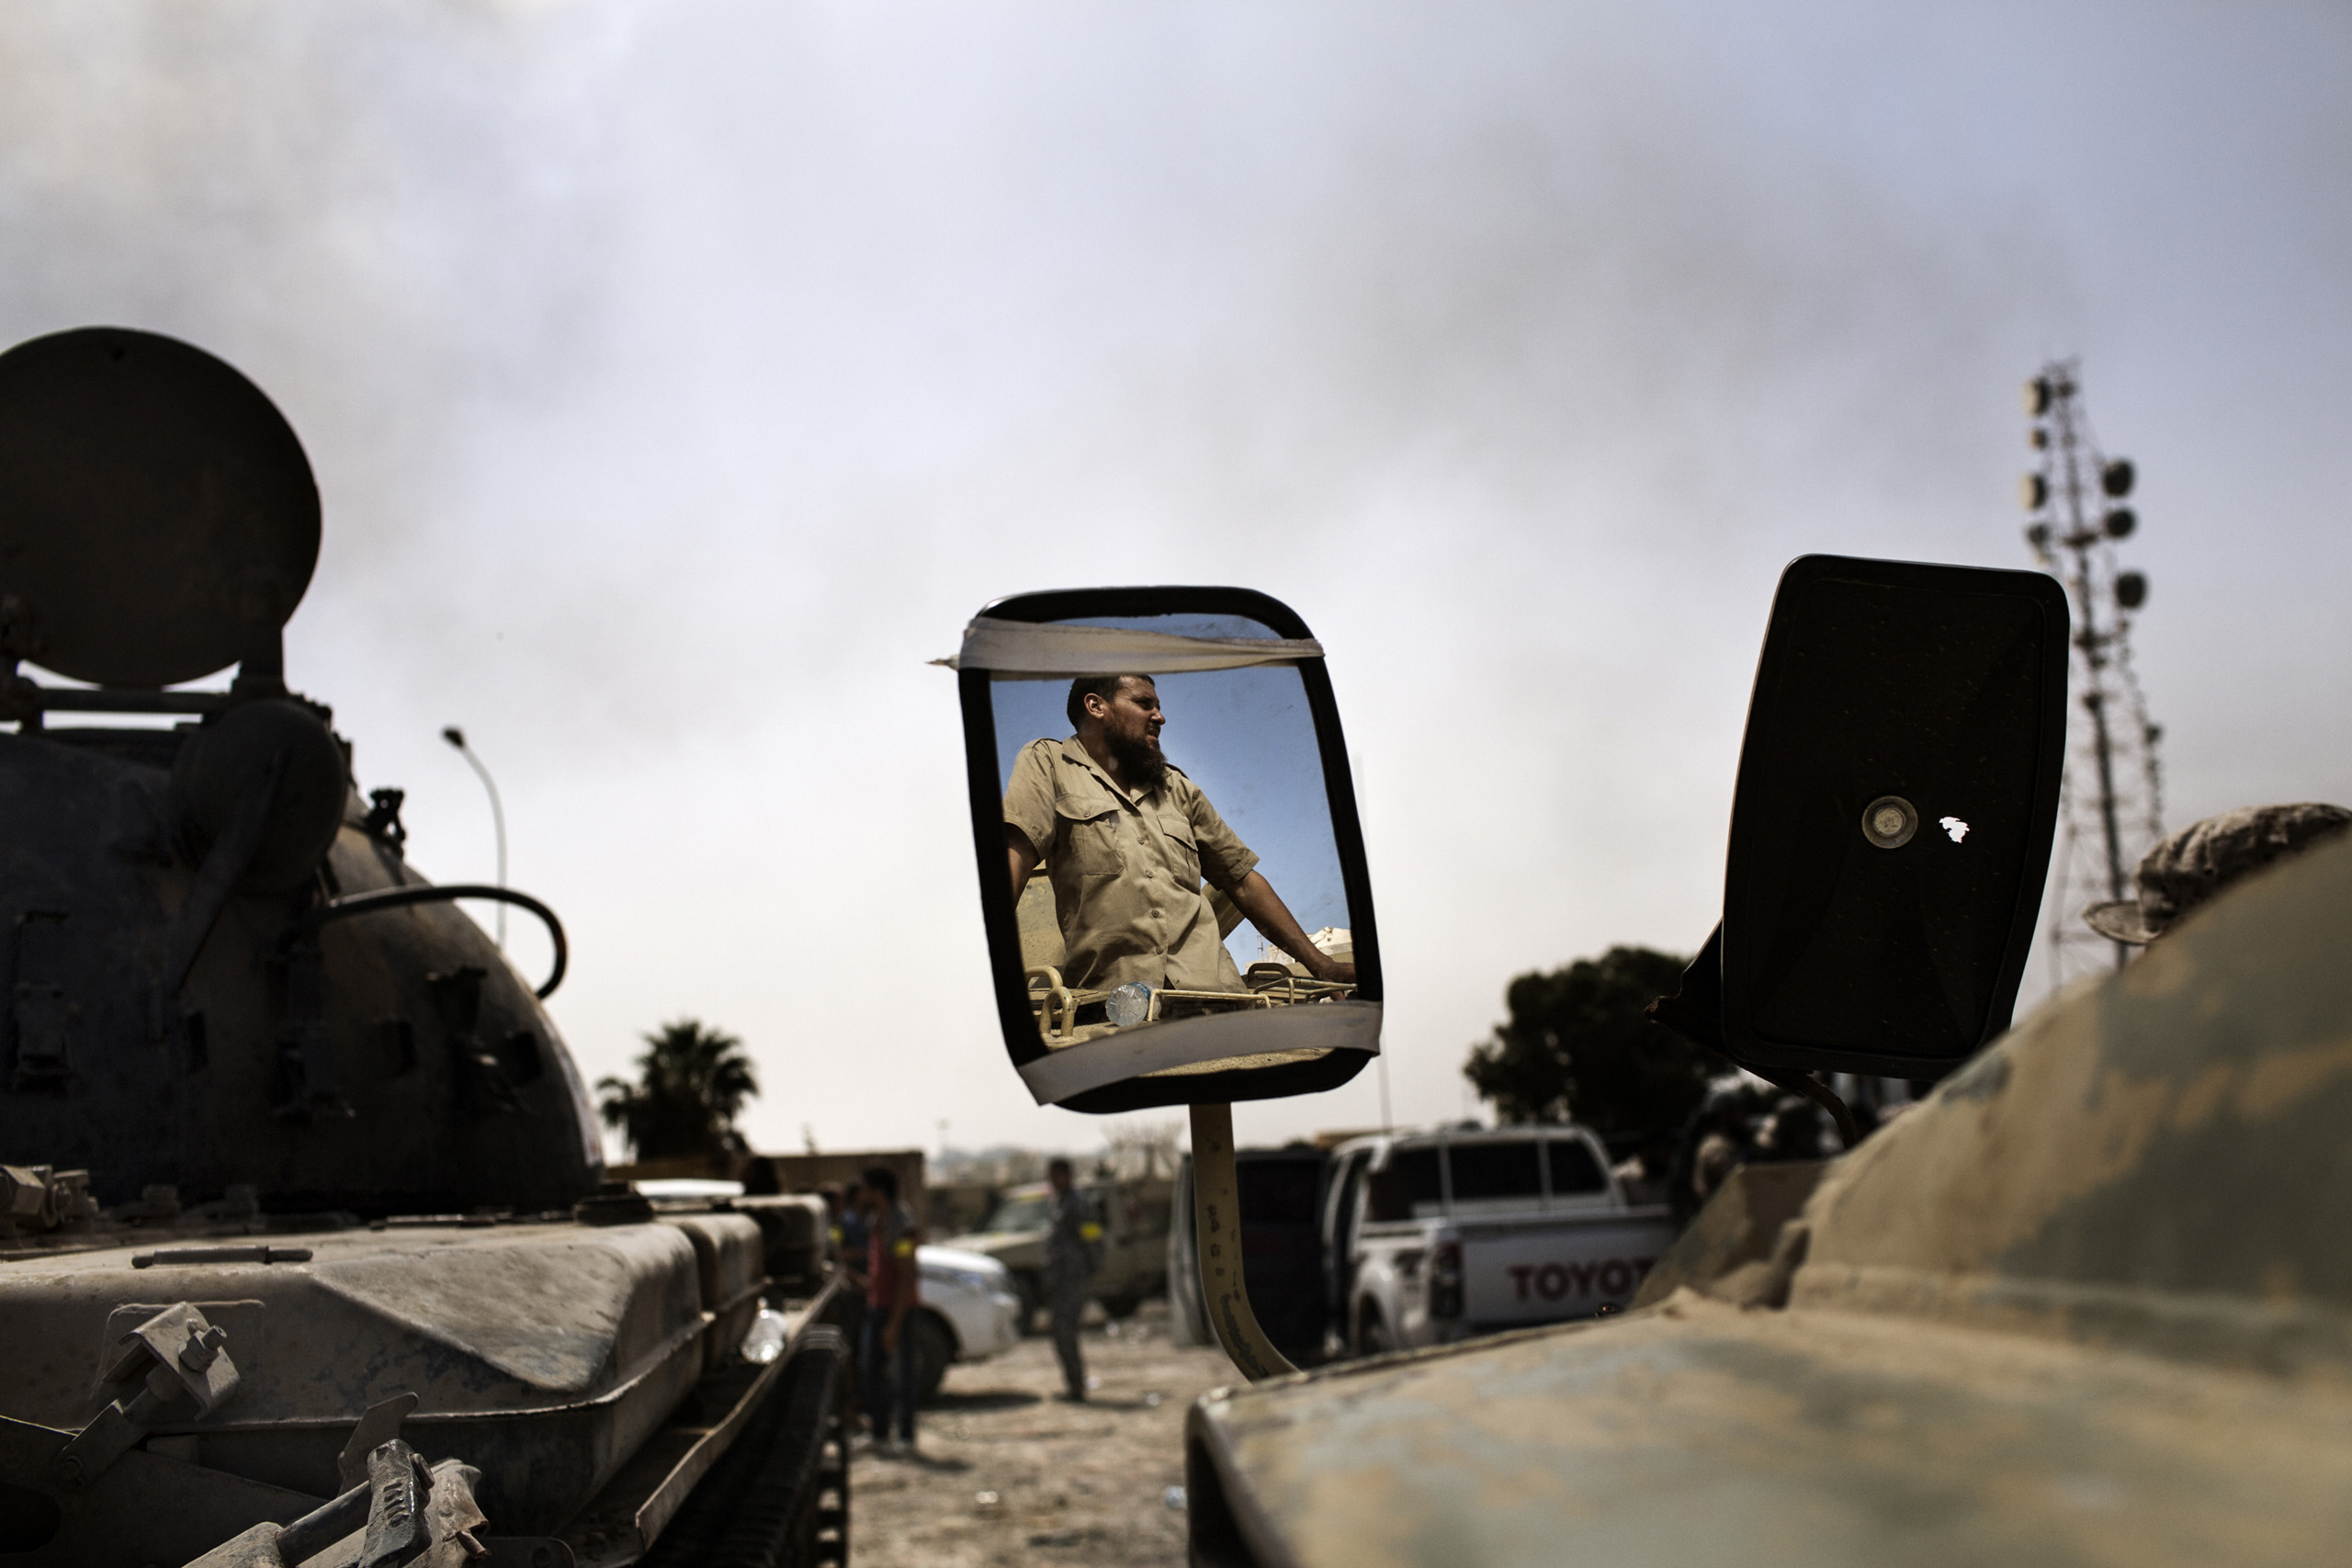 Portrait of a fighter loyal to Libya's Government of National Accord on the western frontline against ISIS (Islamic State), Sirte, Libya, Oct. 2, 2016.